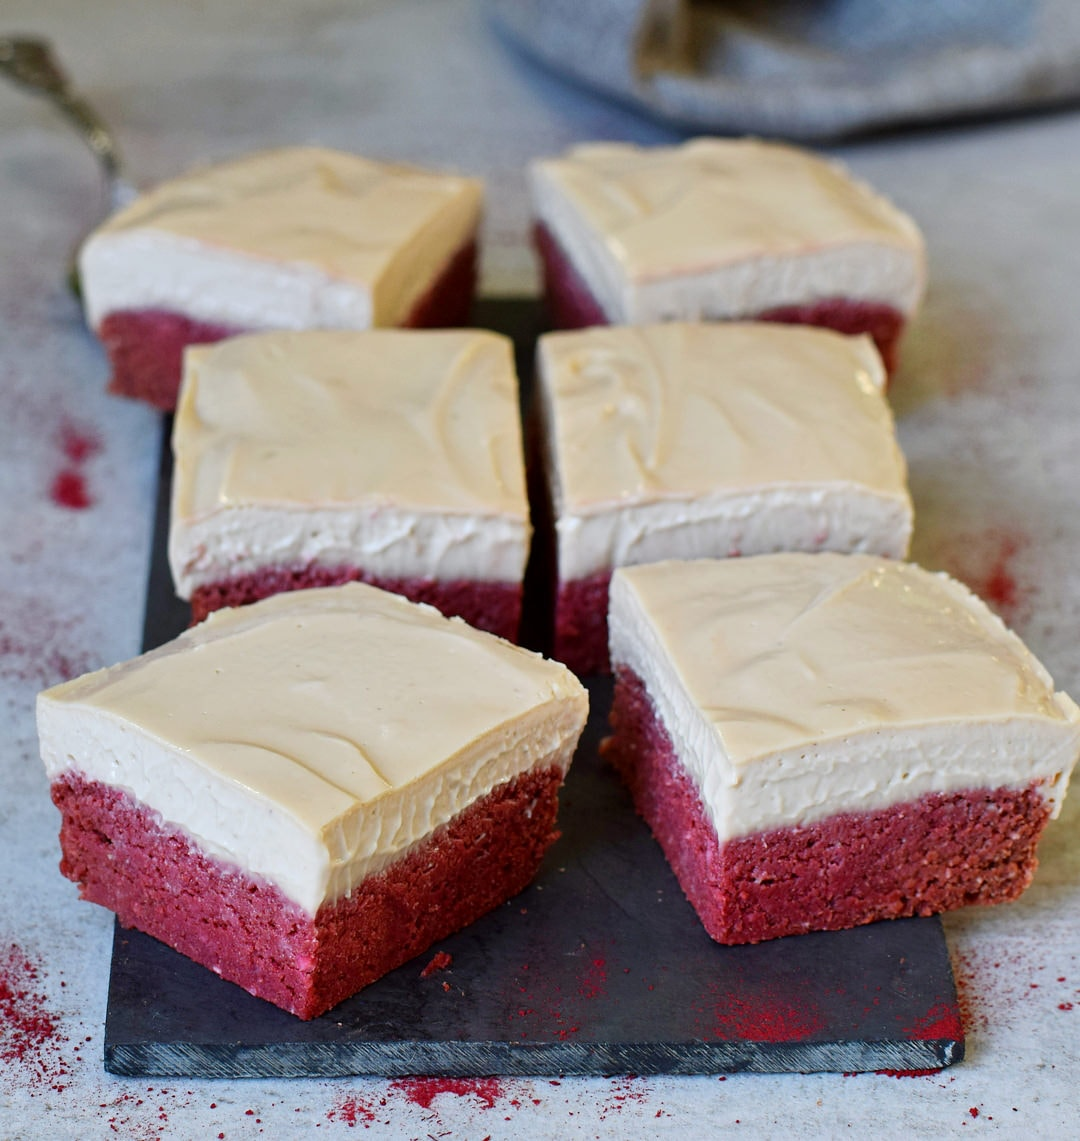 Vegan red velvet bars with cashew cream gluten-free recipe